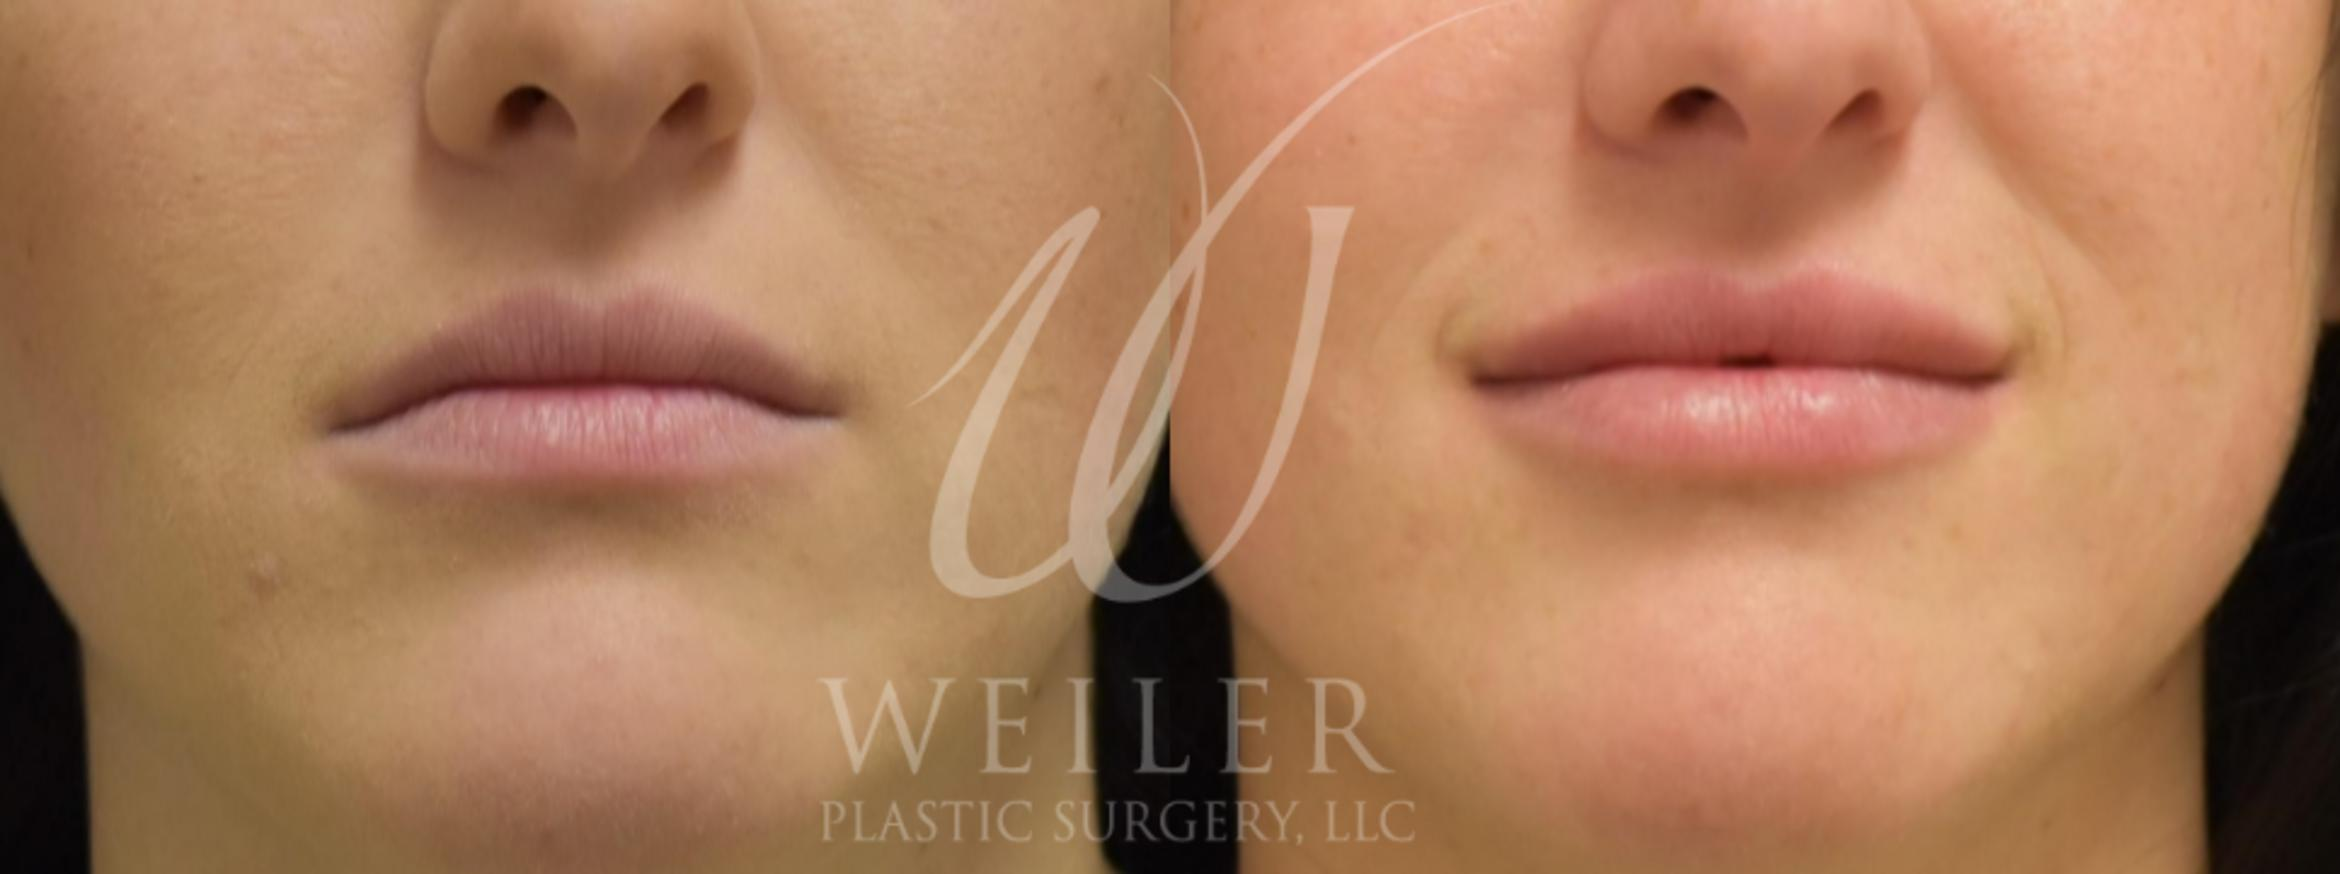 Lip Augmentation Before & After Photo | Baton Rouge, Louisiana | Weiler Plastic Surgery